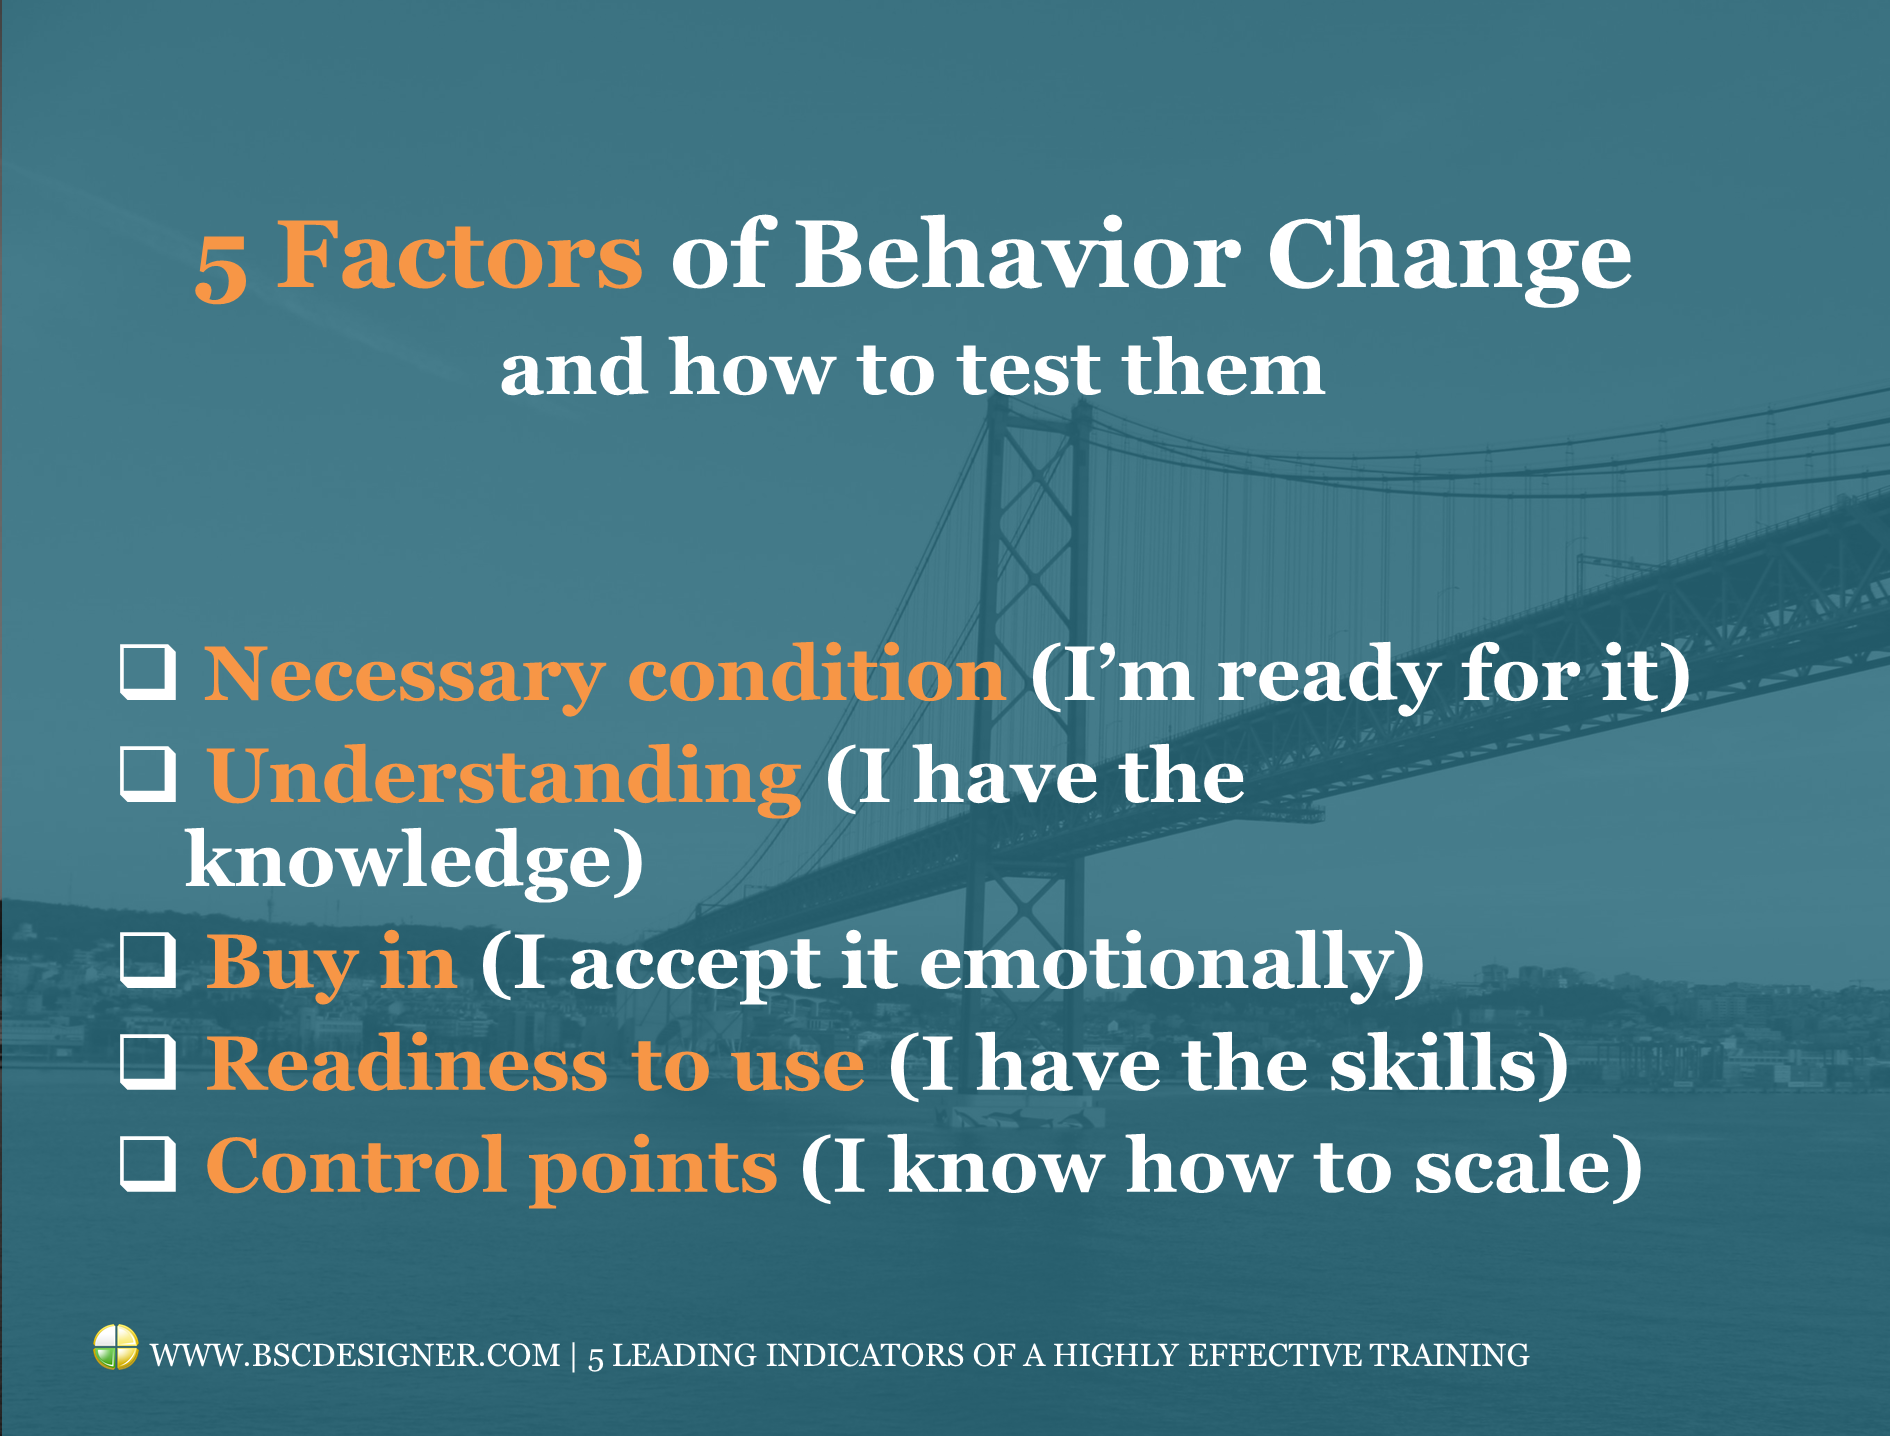 5 leading factors of the training that changes behaviour